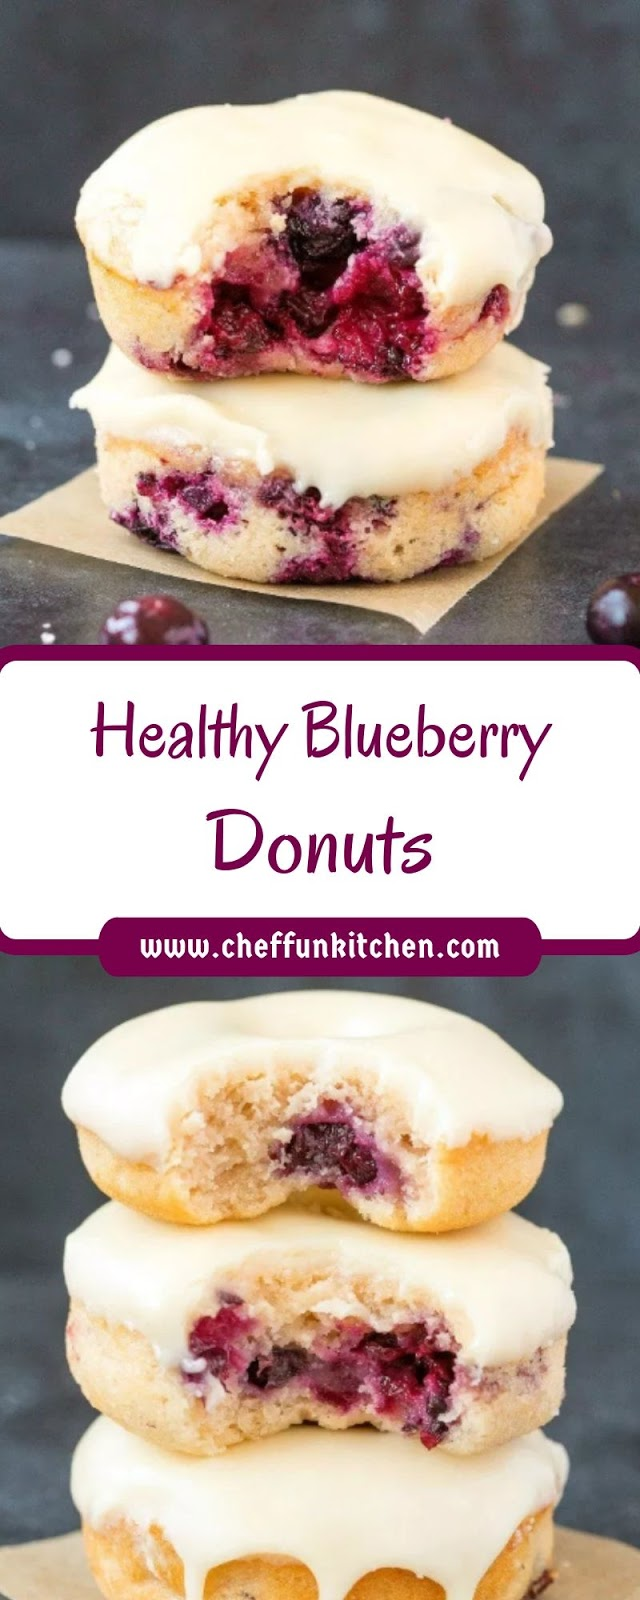 Healthy Blueberry Donuts